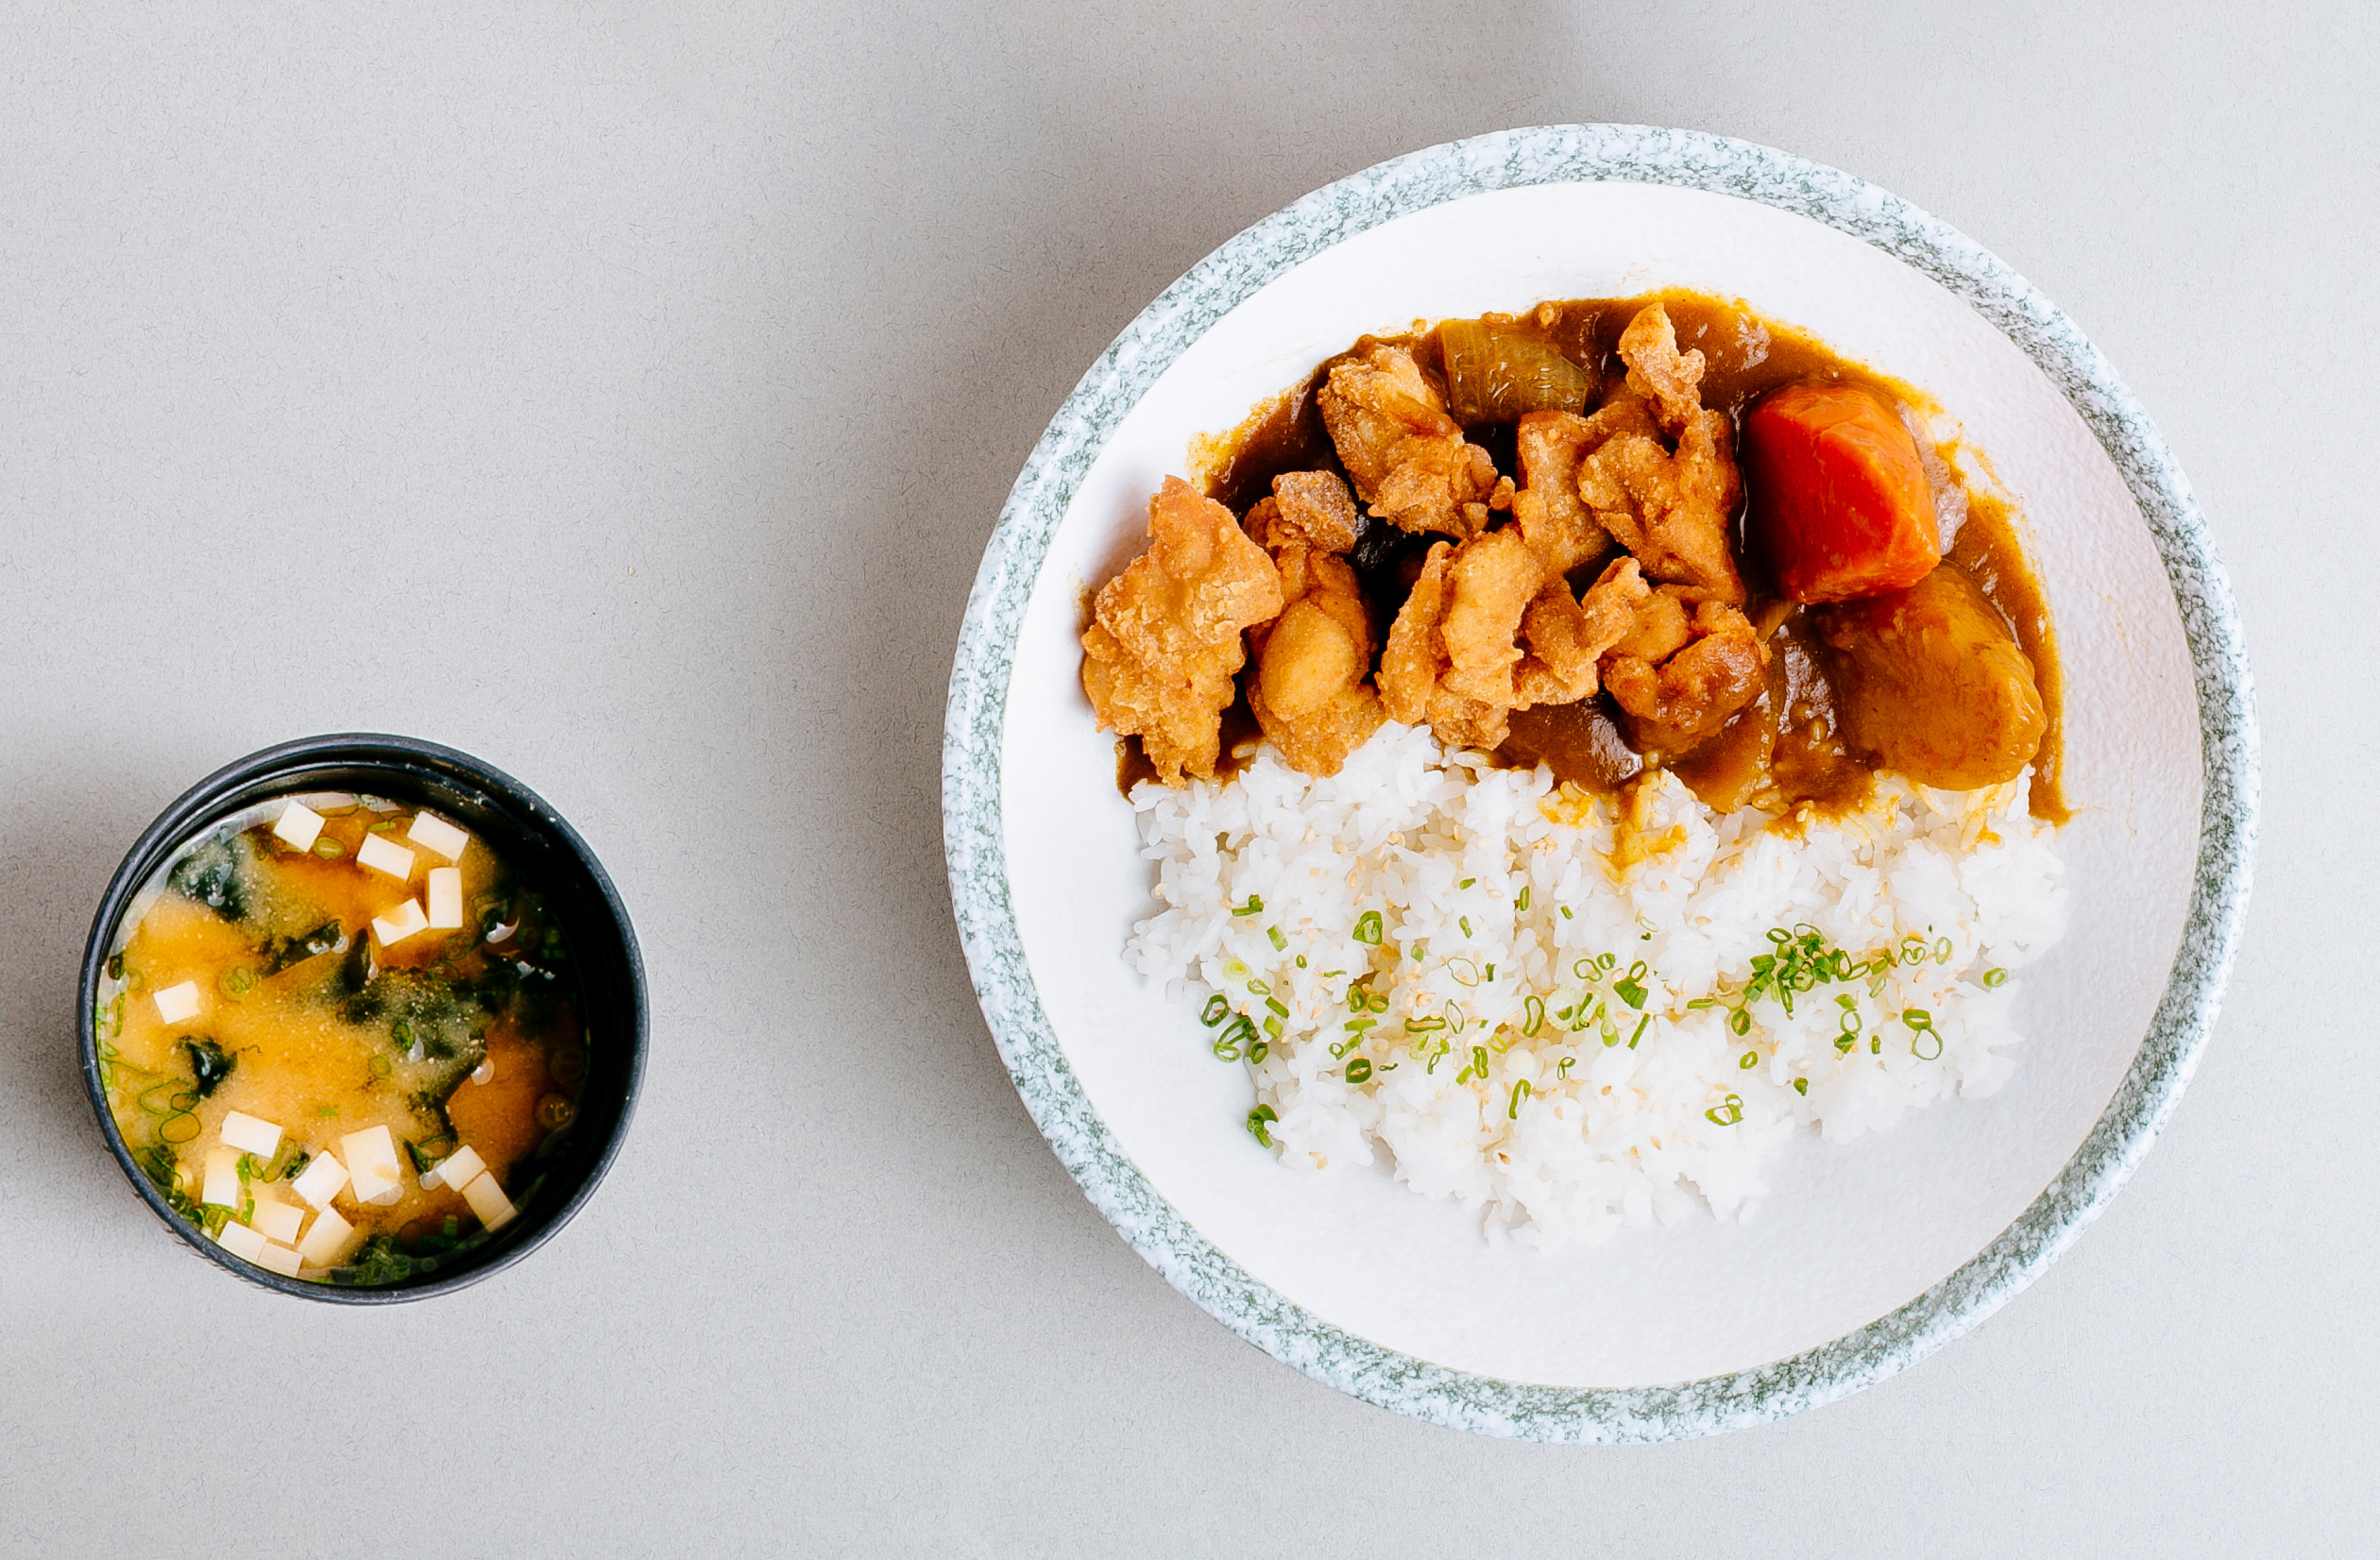 Japanese 3-Course Meal of the Month